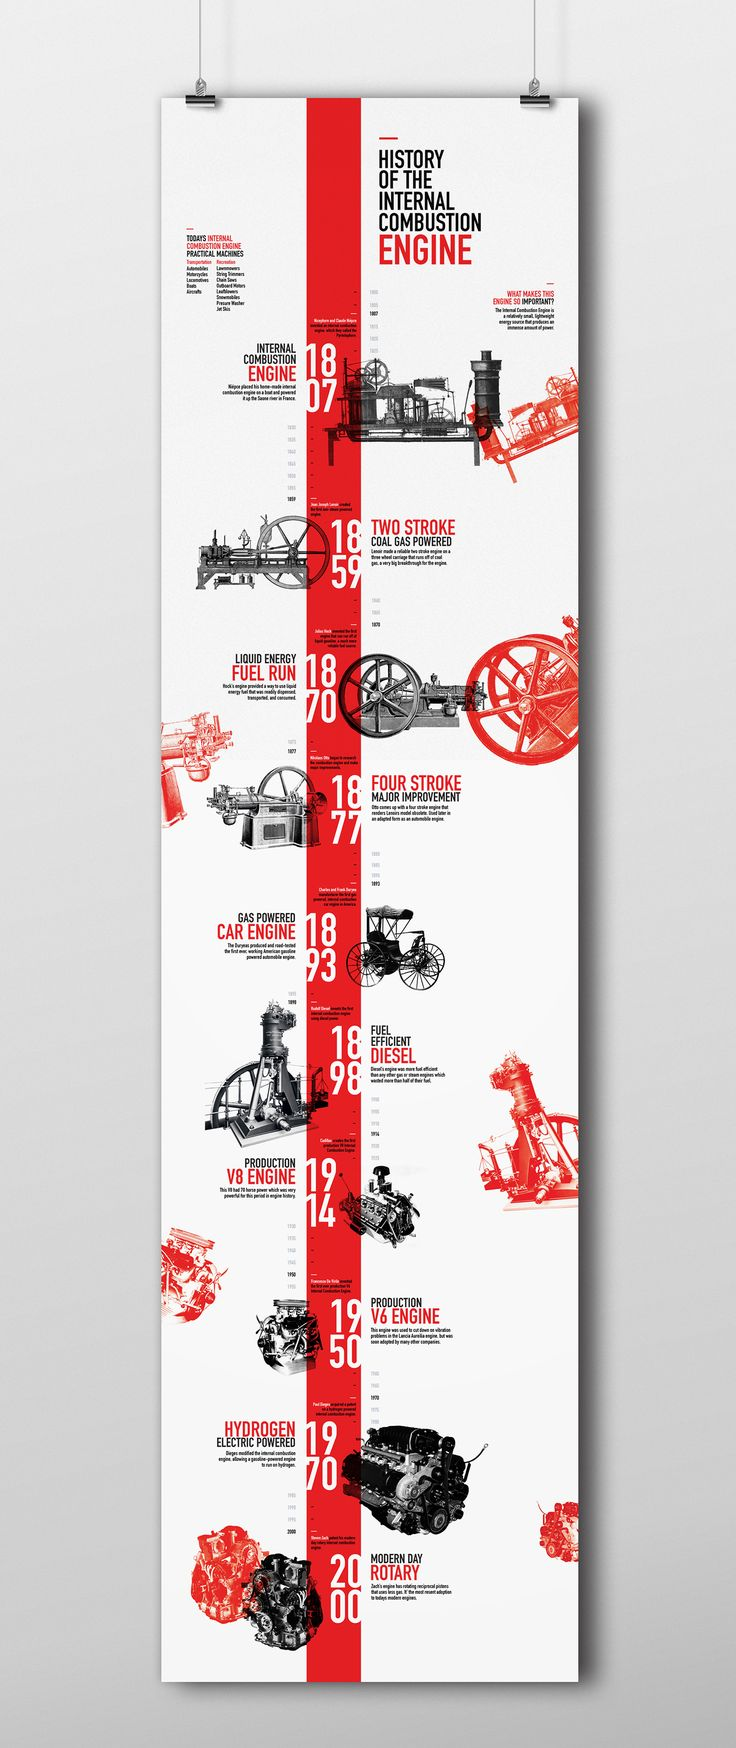 Infographic Timeline created to inform others about the importance and great history of the Internal Combustion Engine. Includes a motion graphic timeline at the end.